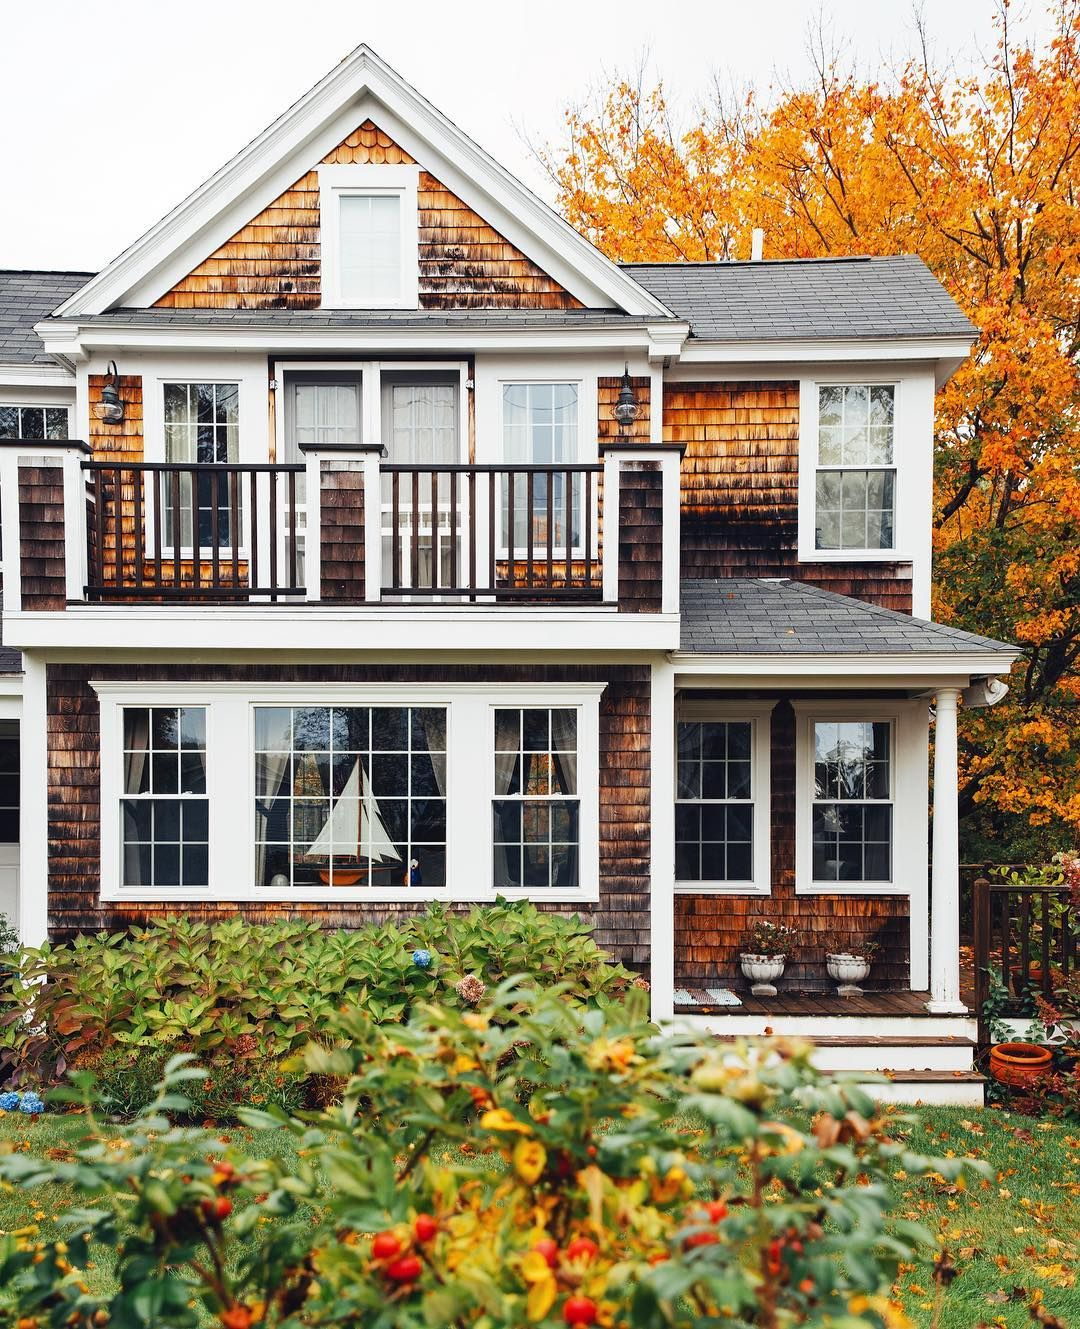 20 Gorgeous Beach House Decor Ideas: Beautiful Fall Home Exterior. Rustic Home With A Lake